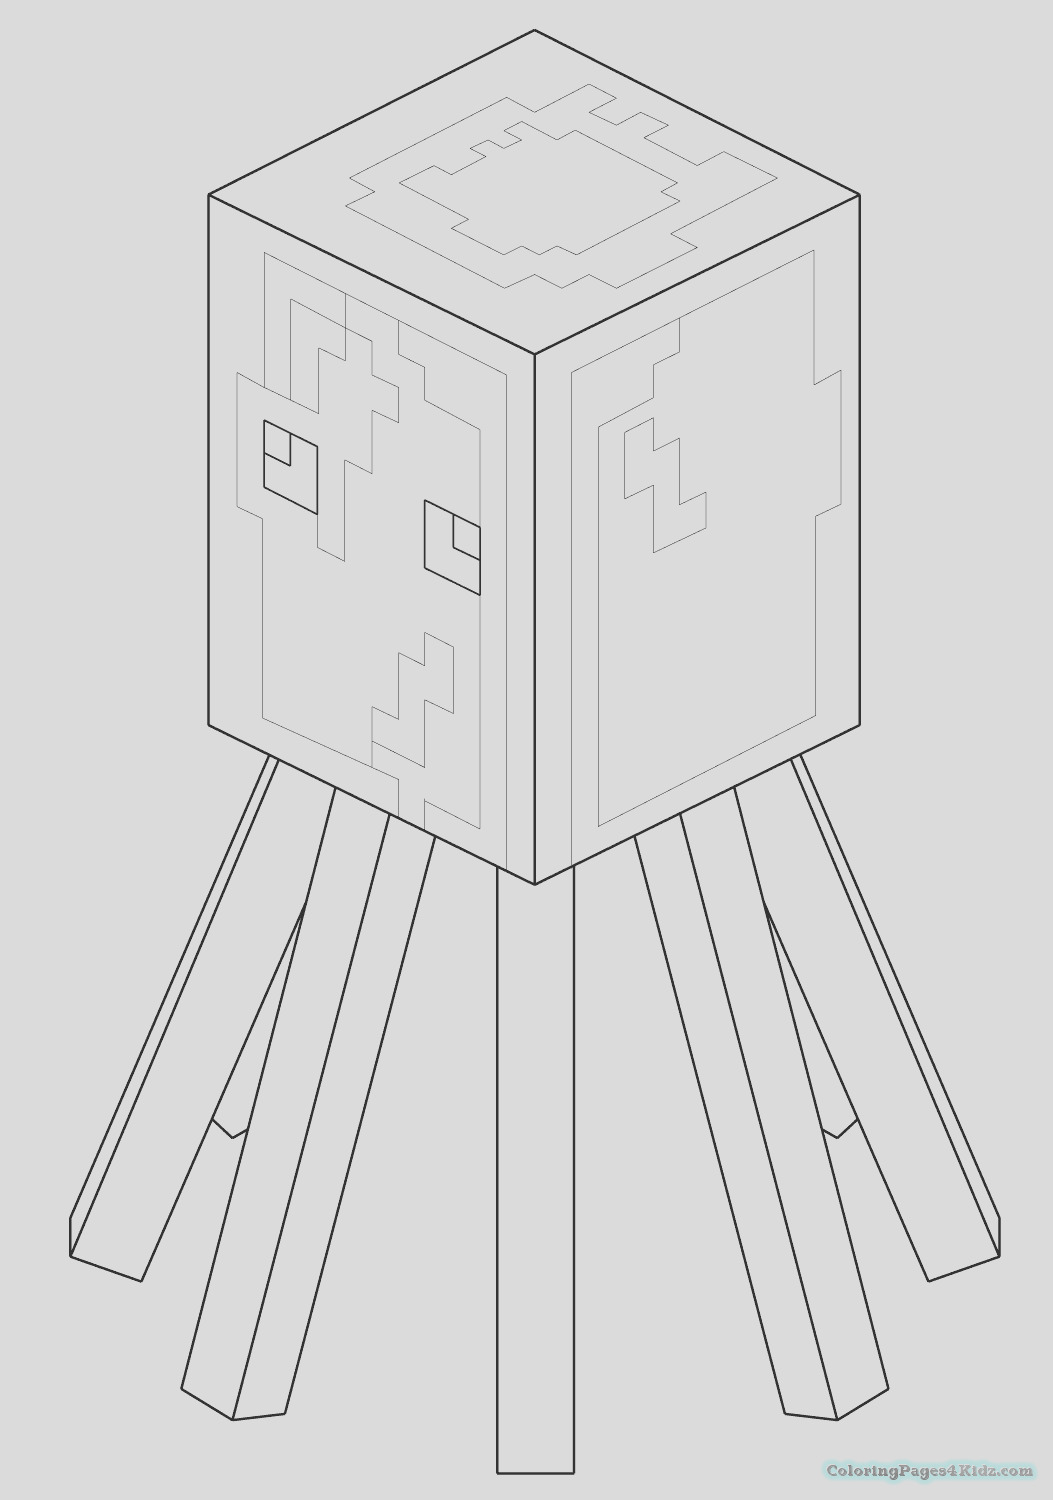 minecraft spider coloring pages print minecraft coloring kids spider coloring pages minecraft pages spider coloring